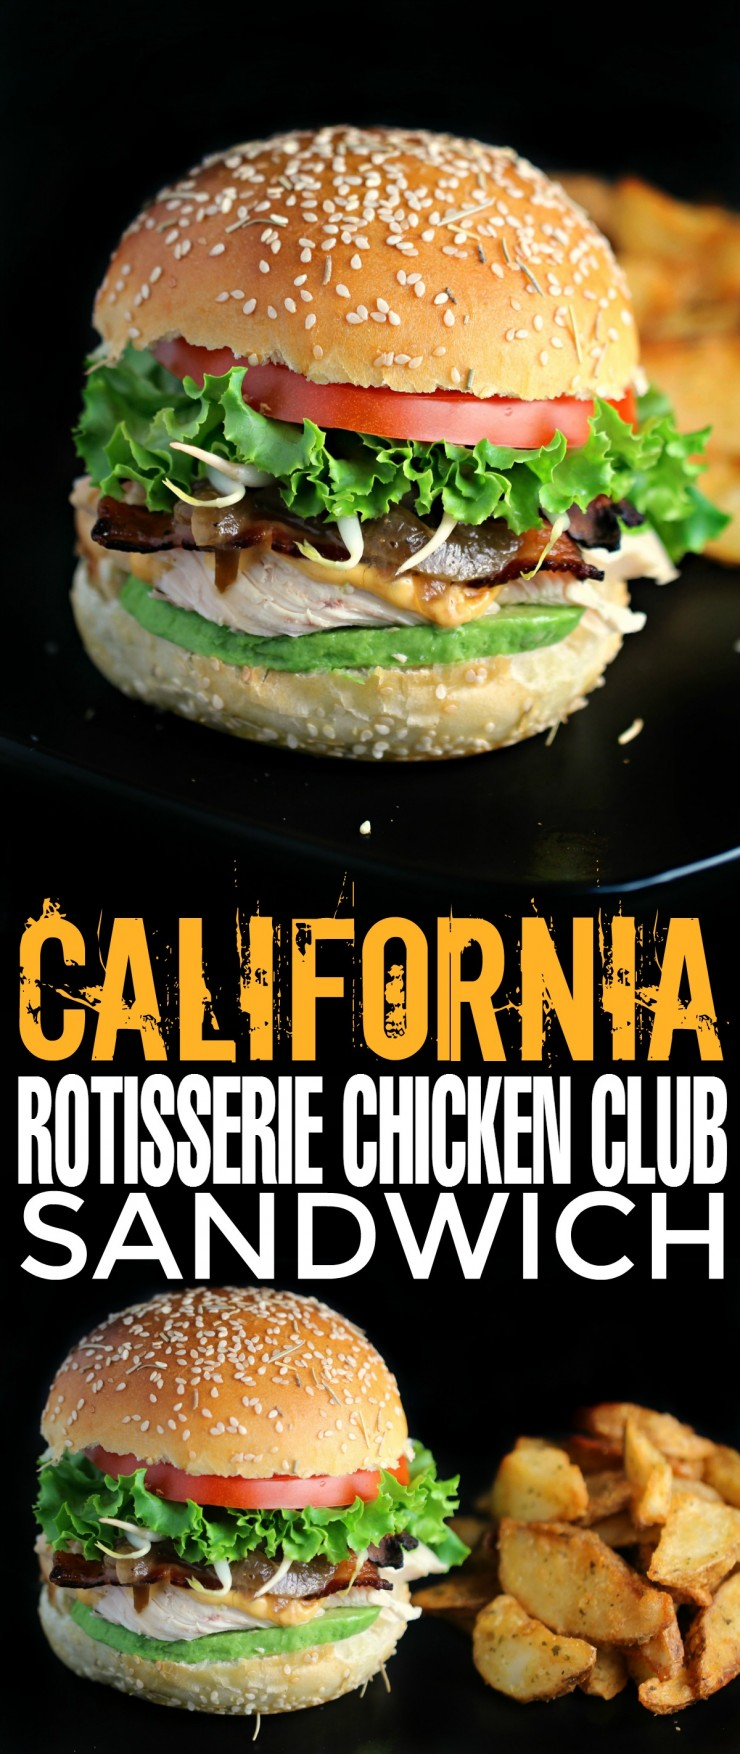 This California Rotisserie Chicken Club Sandwich makes use of leftover chicken paired with applewood smoked bacon, avocado, caramelised onions and more! Great Lunch idea!